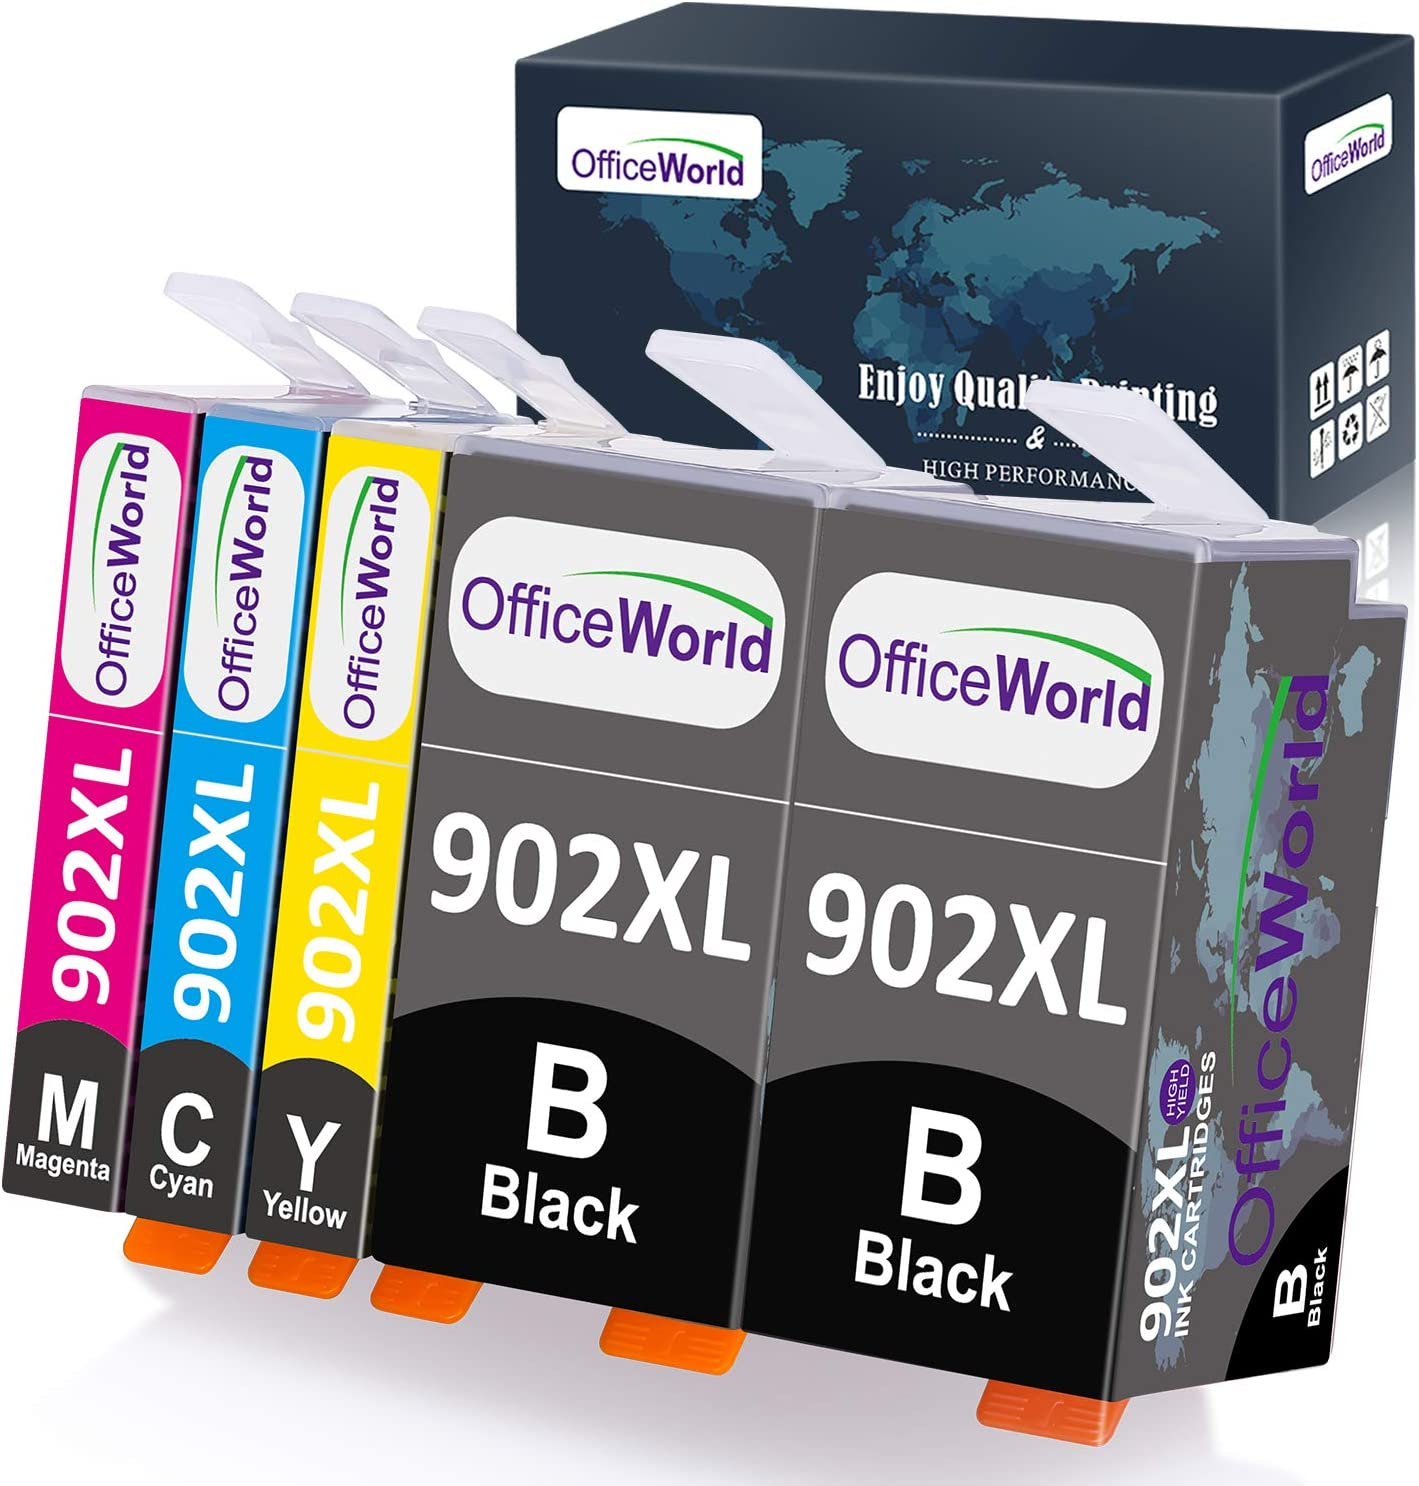 OfficeWorld Compatible Ink Cartridges Replacement for HP 902XL 902 XL, Used for OfficeJet Pro 6968 6978 6958 6962 6960 6970 6979 6954 6975 Printer, 5-Pack (2 Black, 1 Magenta, 1 Cyan, 1 Yellow)